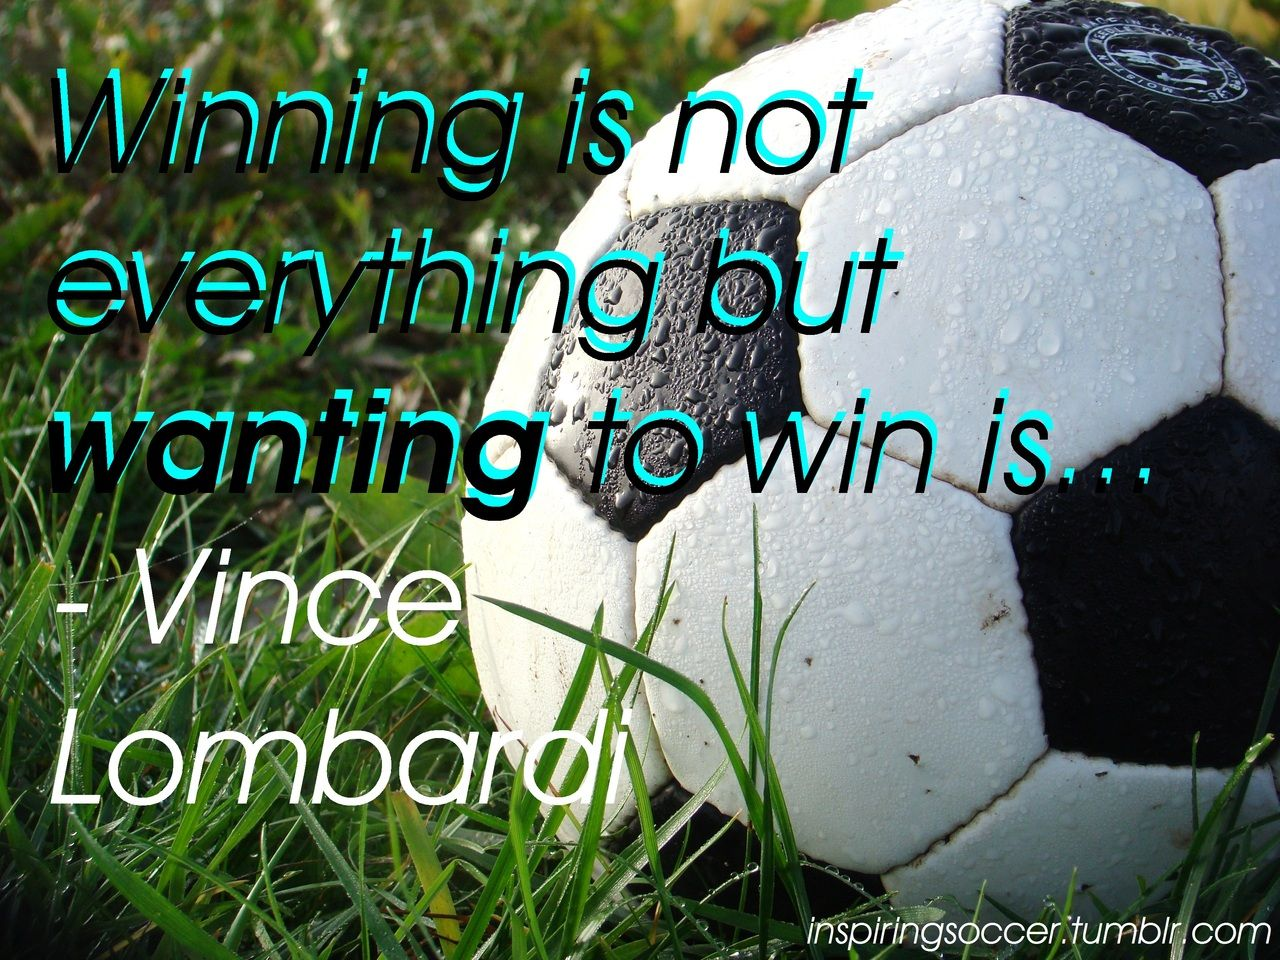 Motivational Football Quotes 43 Best Motivational Soccer Quotes Images On Pinterest  Sport